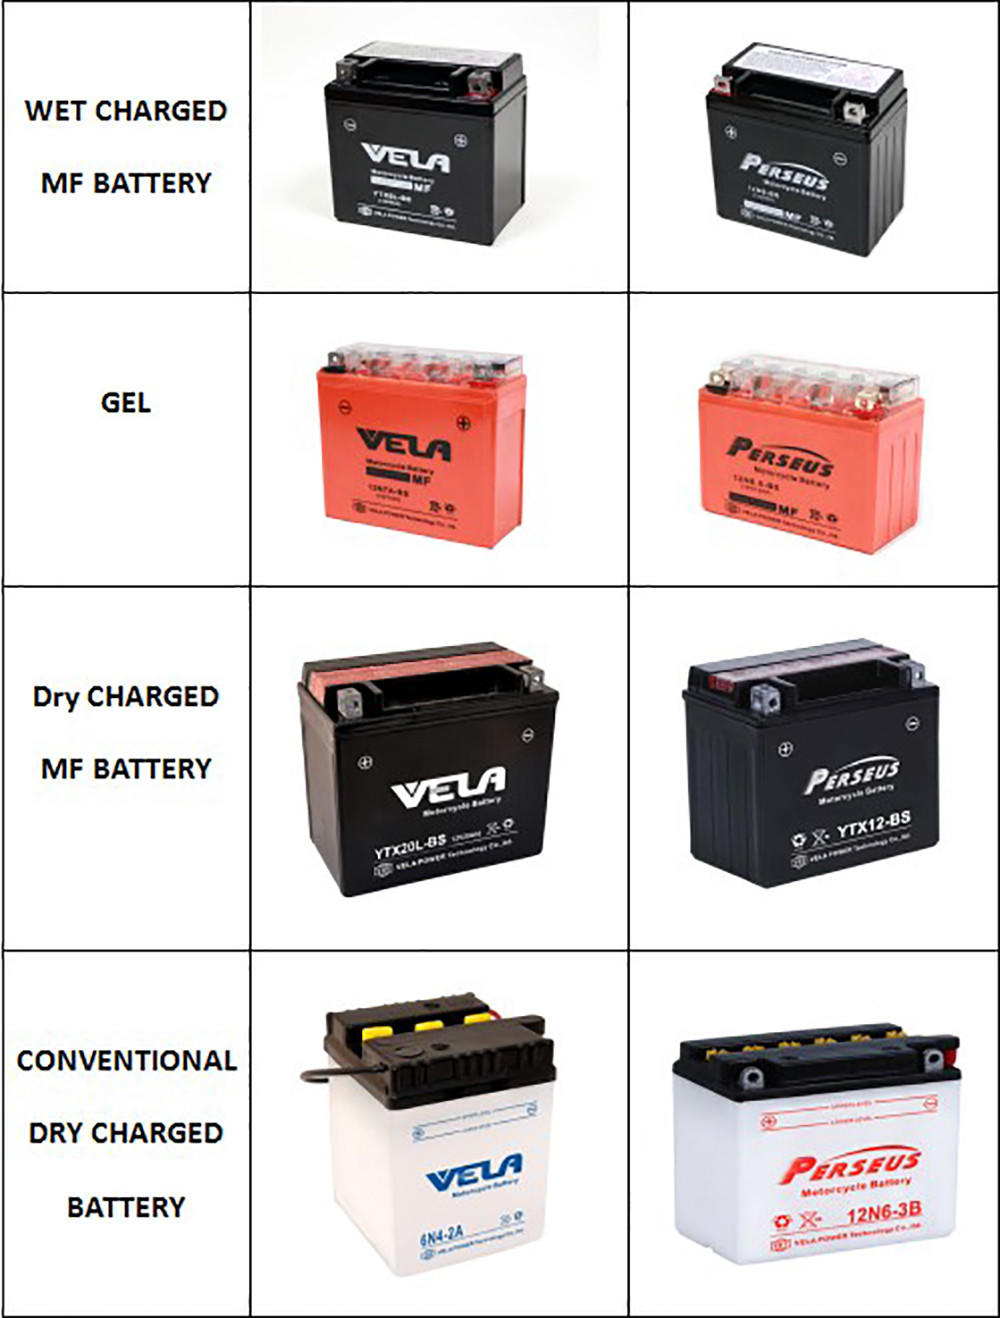 VELA long life time motorbike battery perfect for motorbikes-2